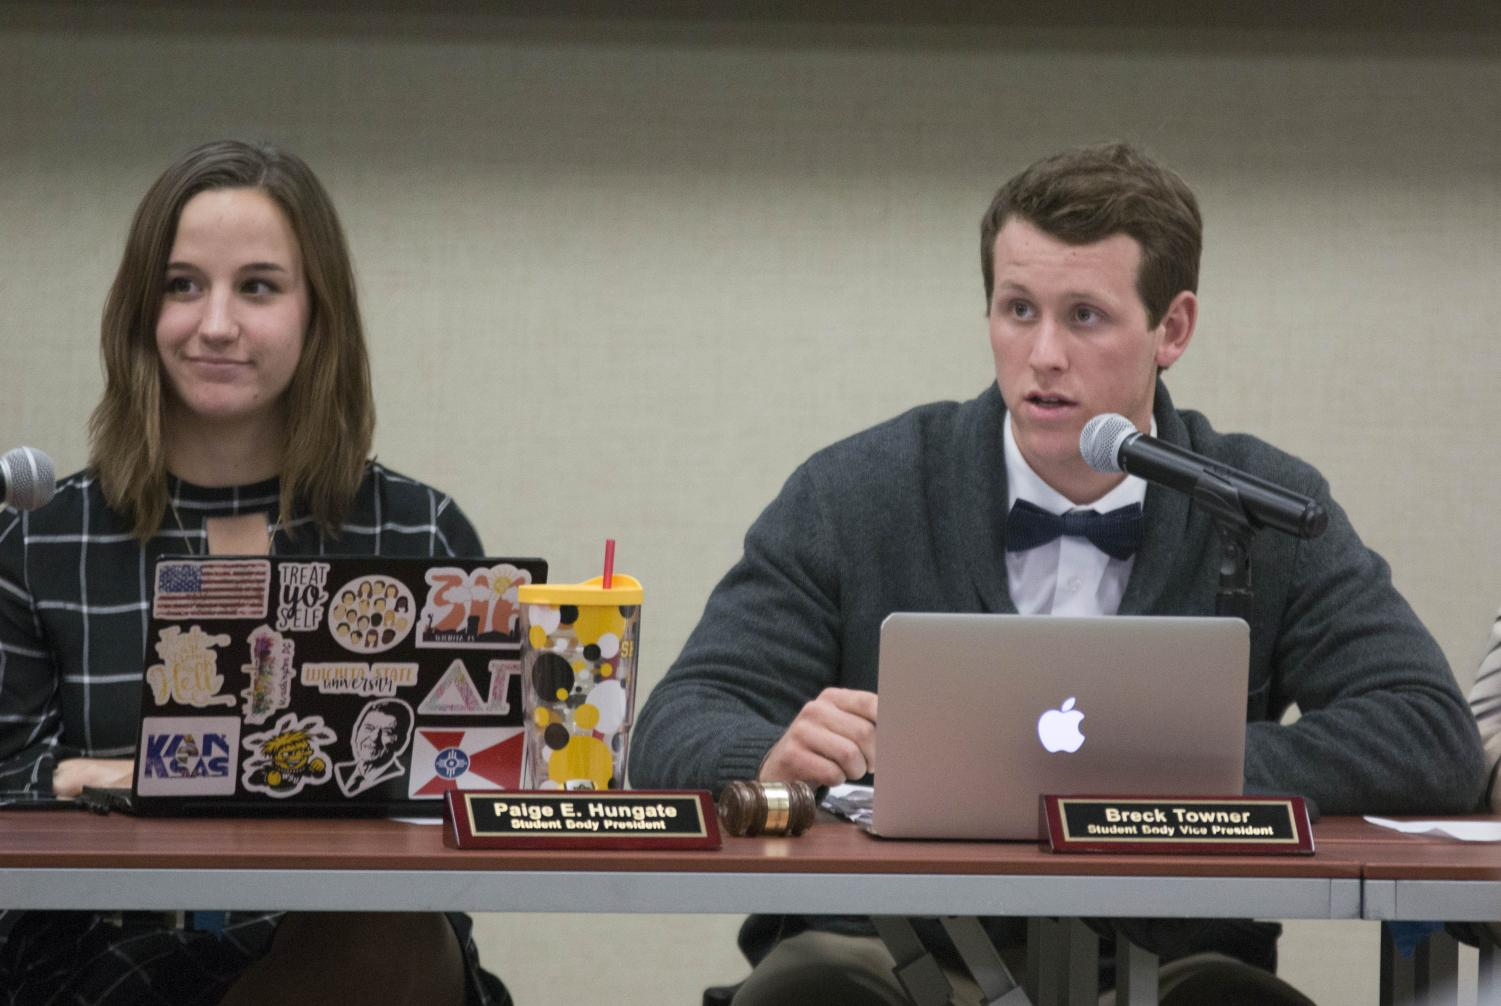 Breck Towner, student body vice president, speaks to a senator during the meeting Wednesday evening.